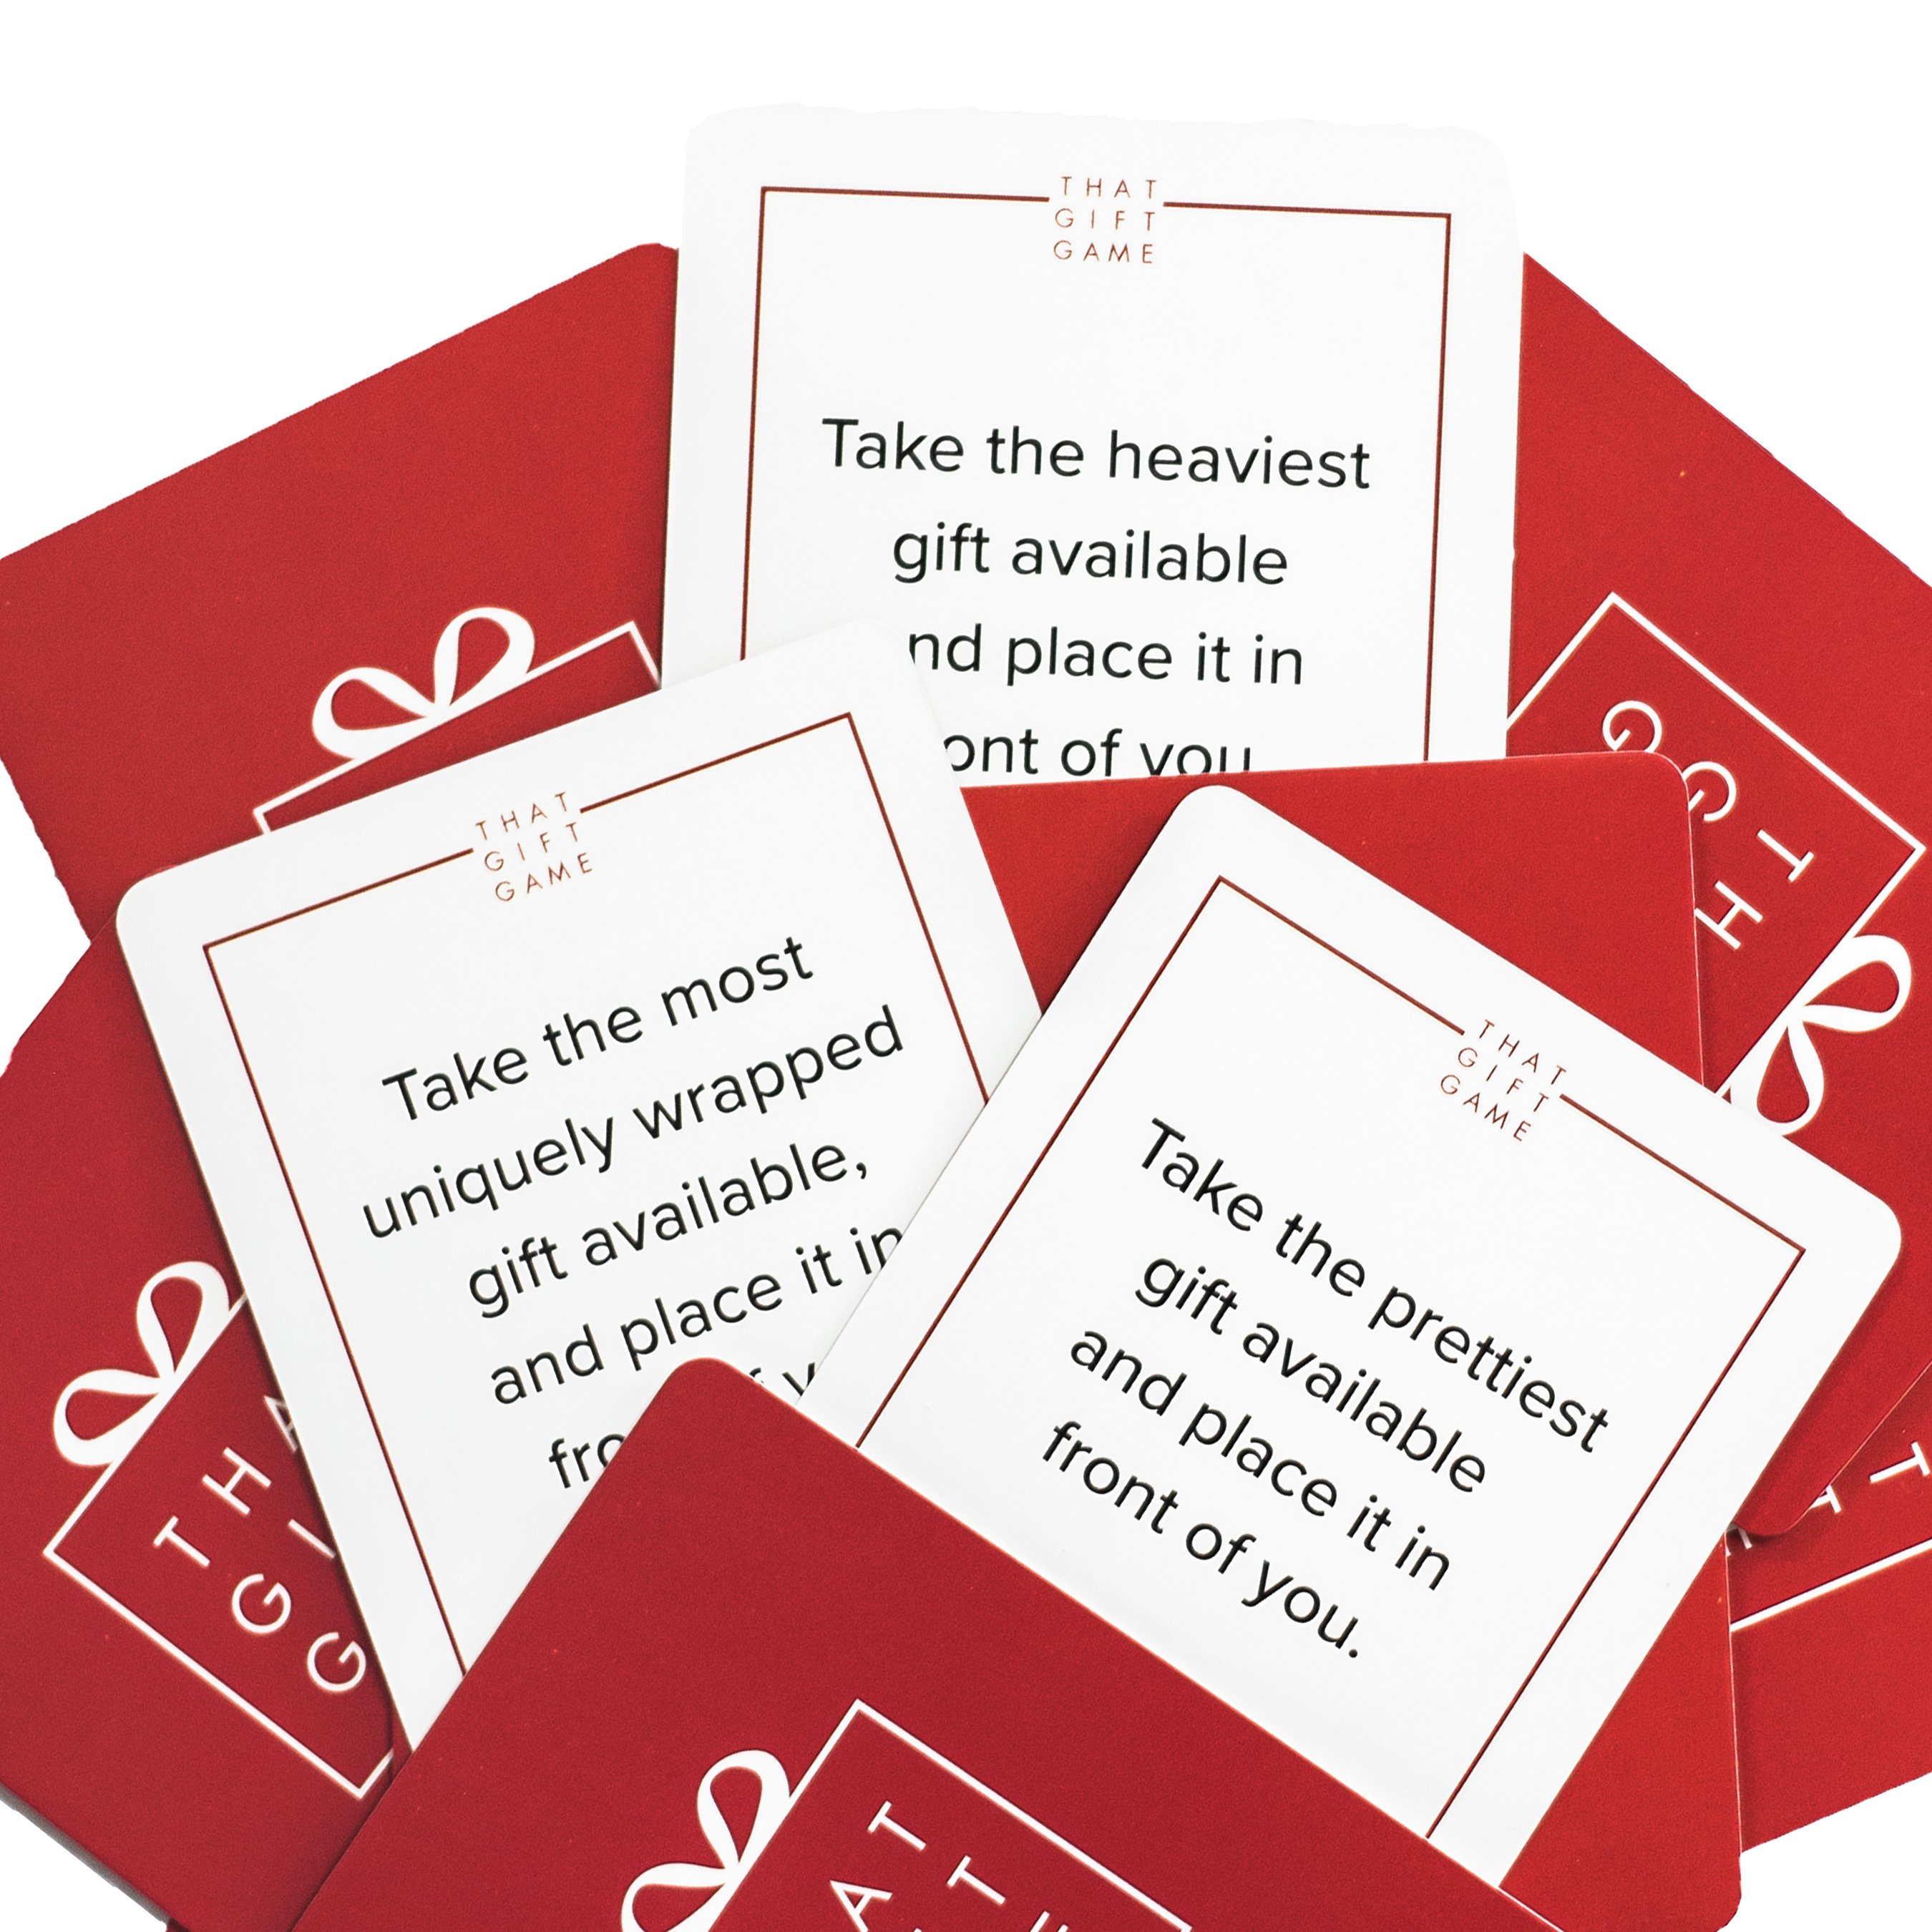 Present exchange game cards to help choose a gift for gift exchange game at a holiday party